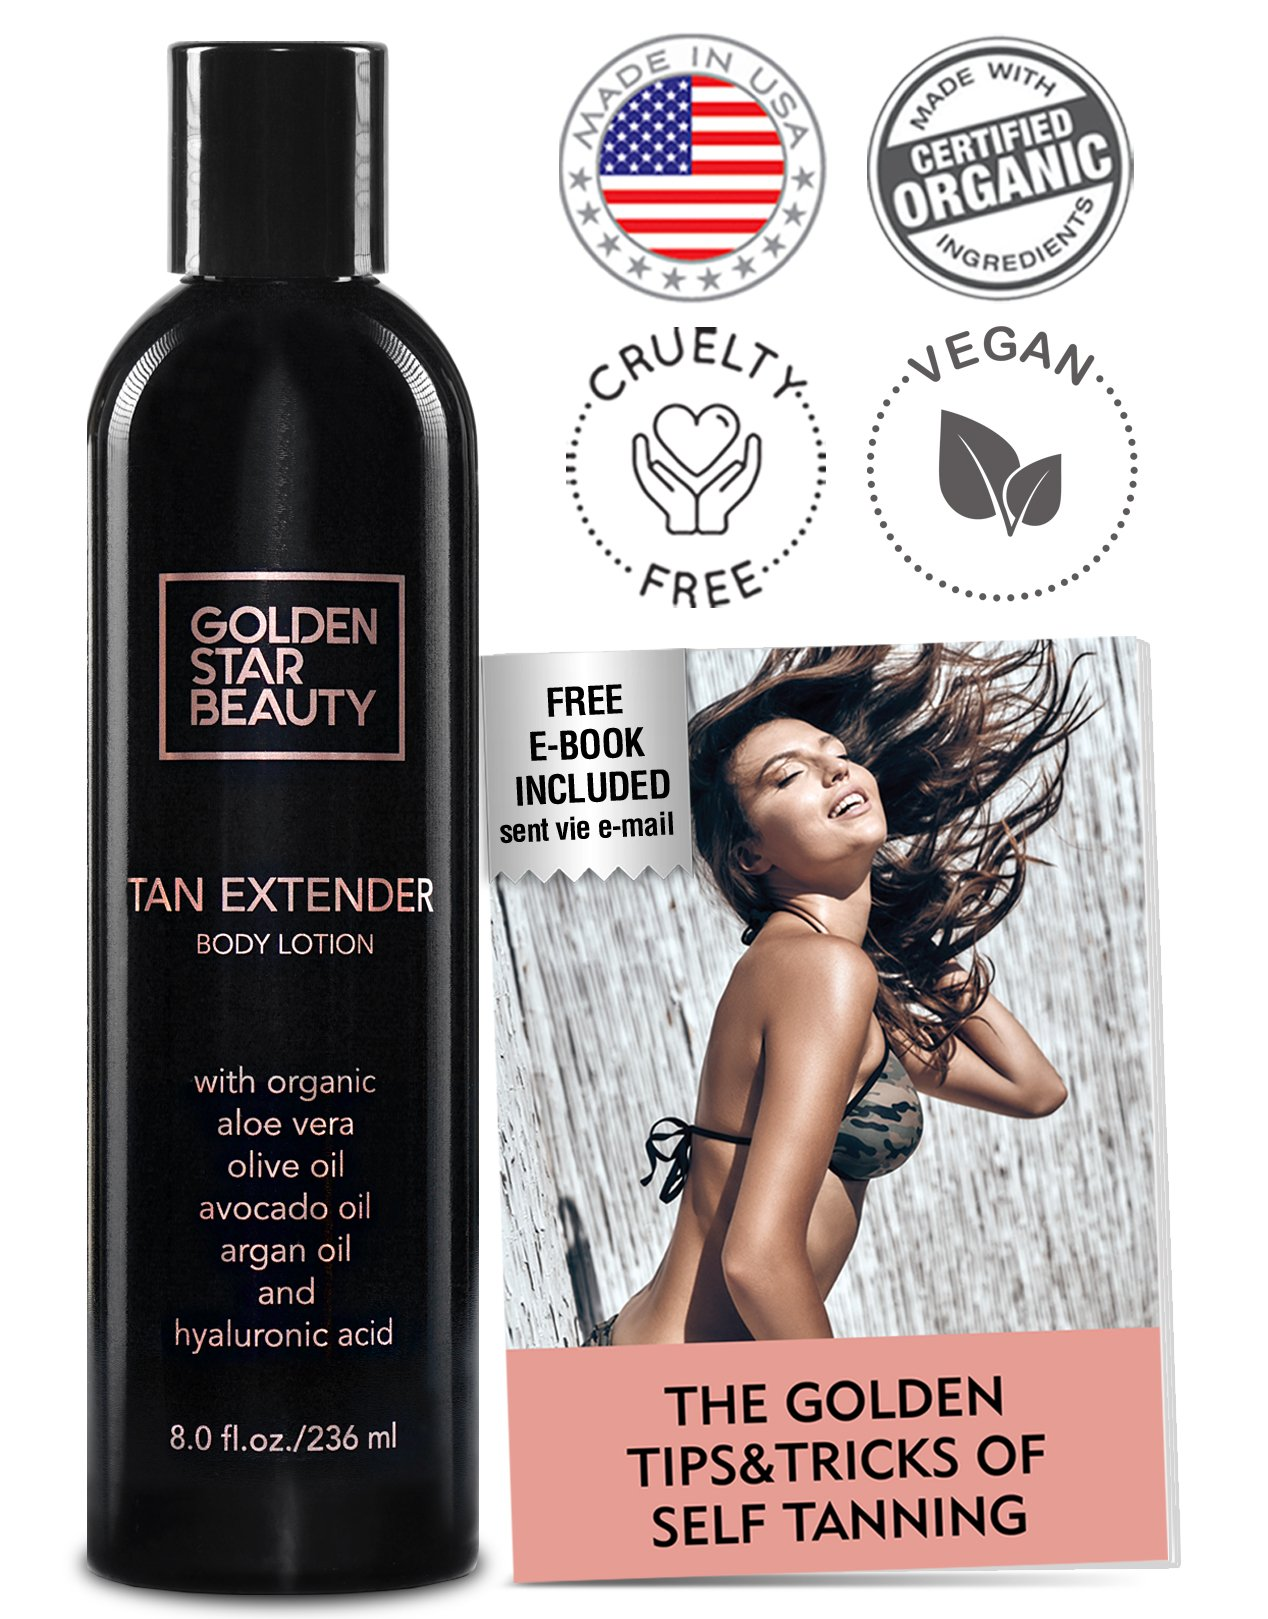 Amazon self tanner sunless tanning spray natural and tan extender daily moisturizer after tanning lotion worganic oils vitamins and hyaluronic fandeluxe Images